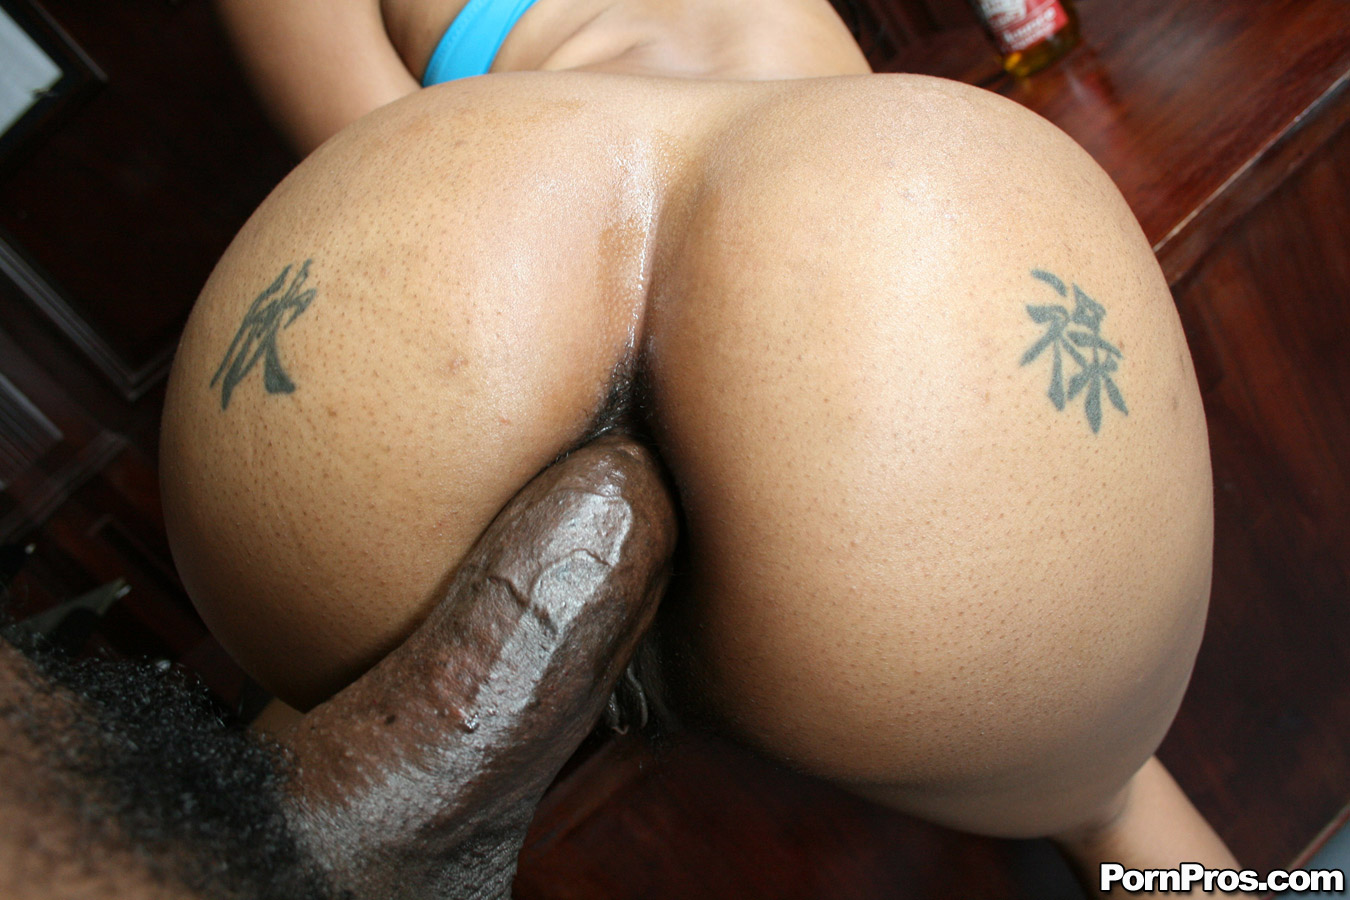 Big black dicks and ass